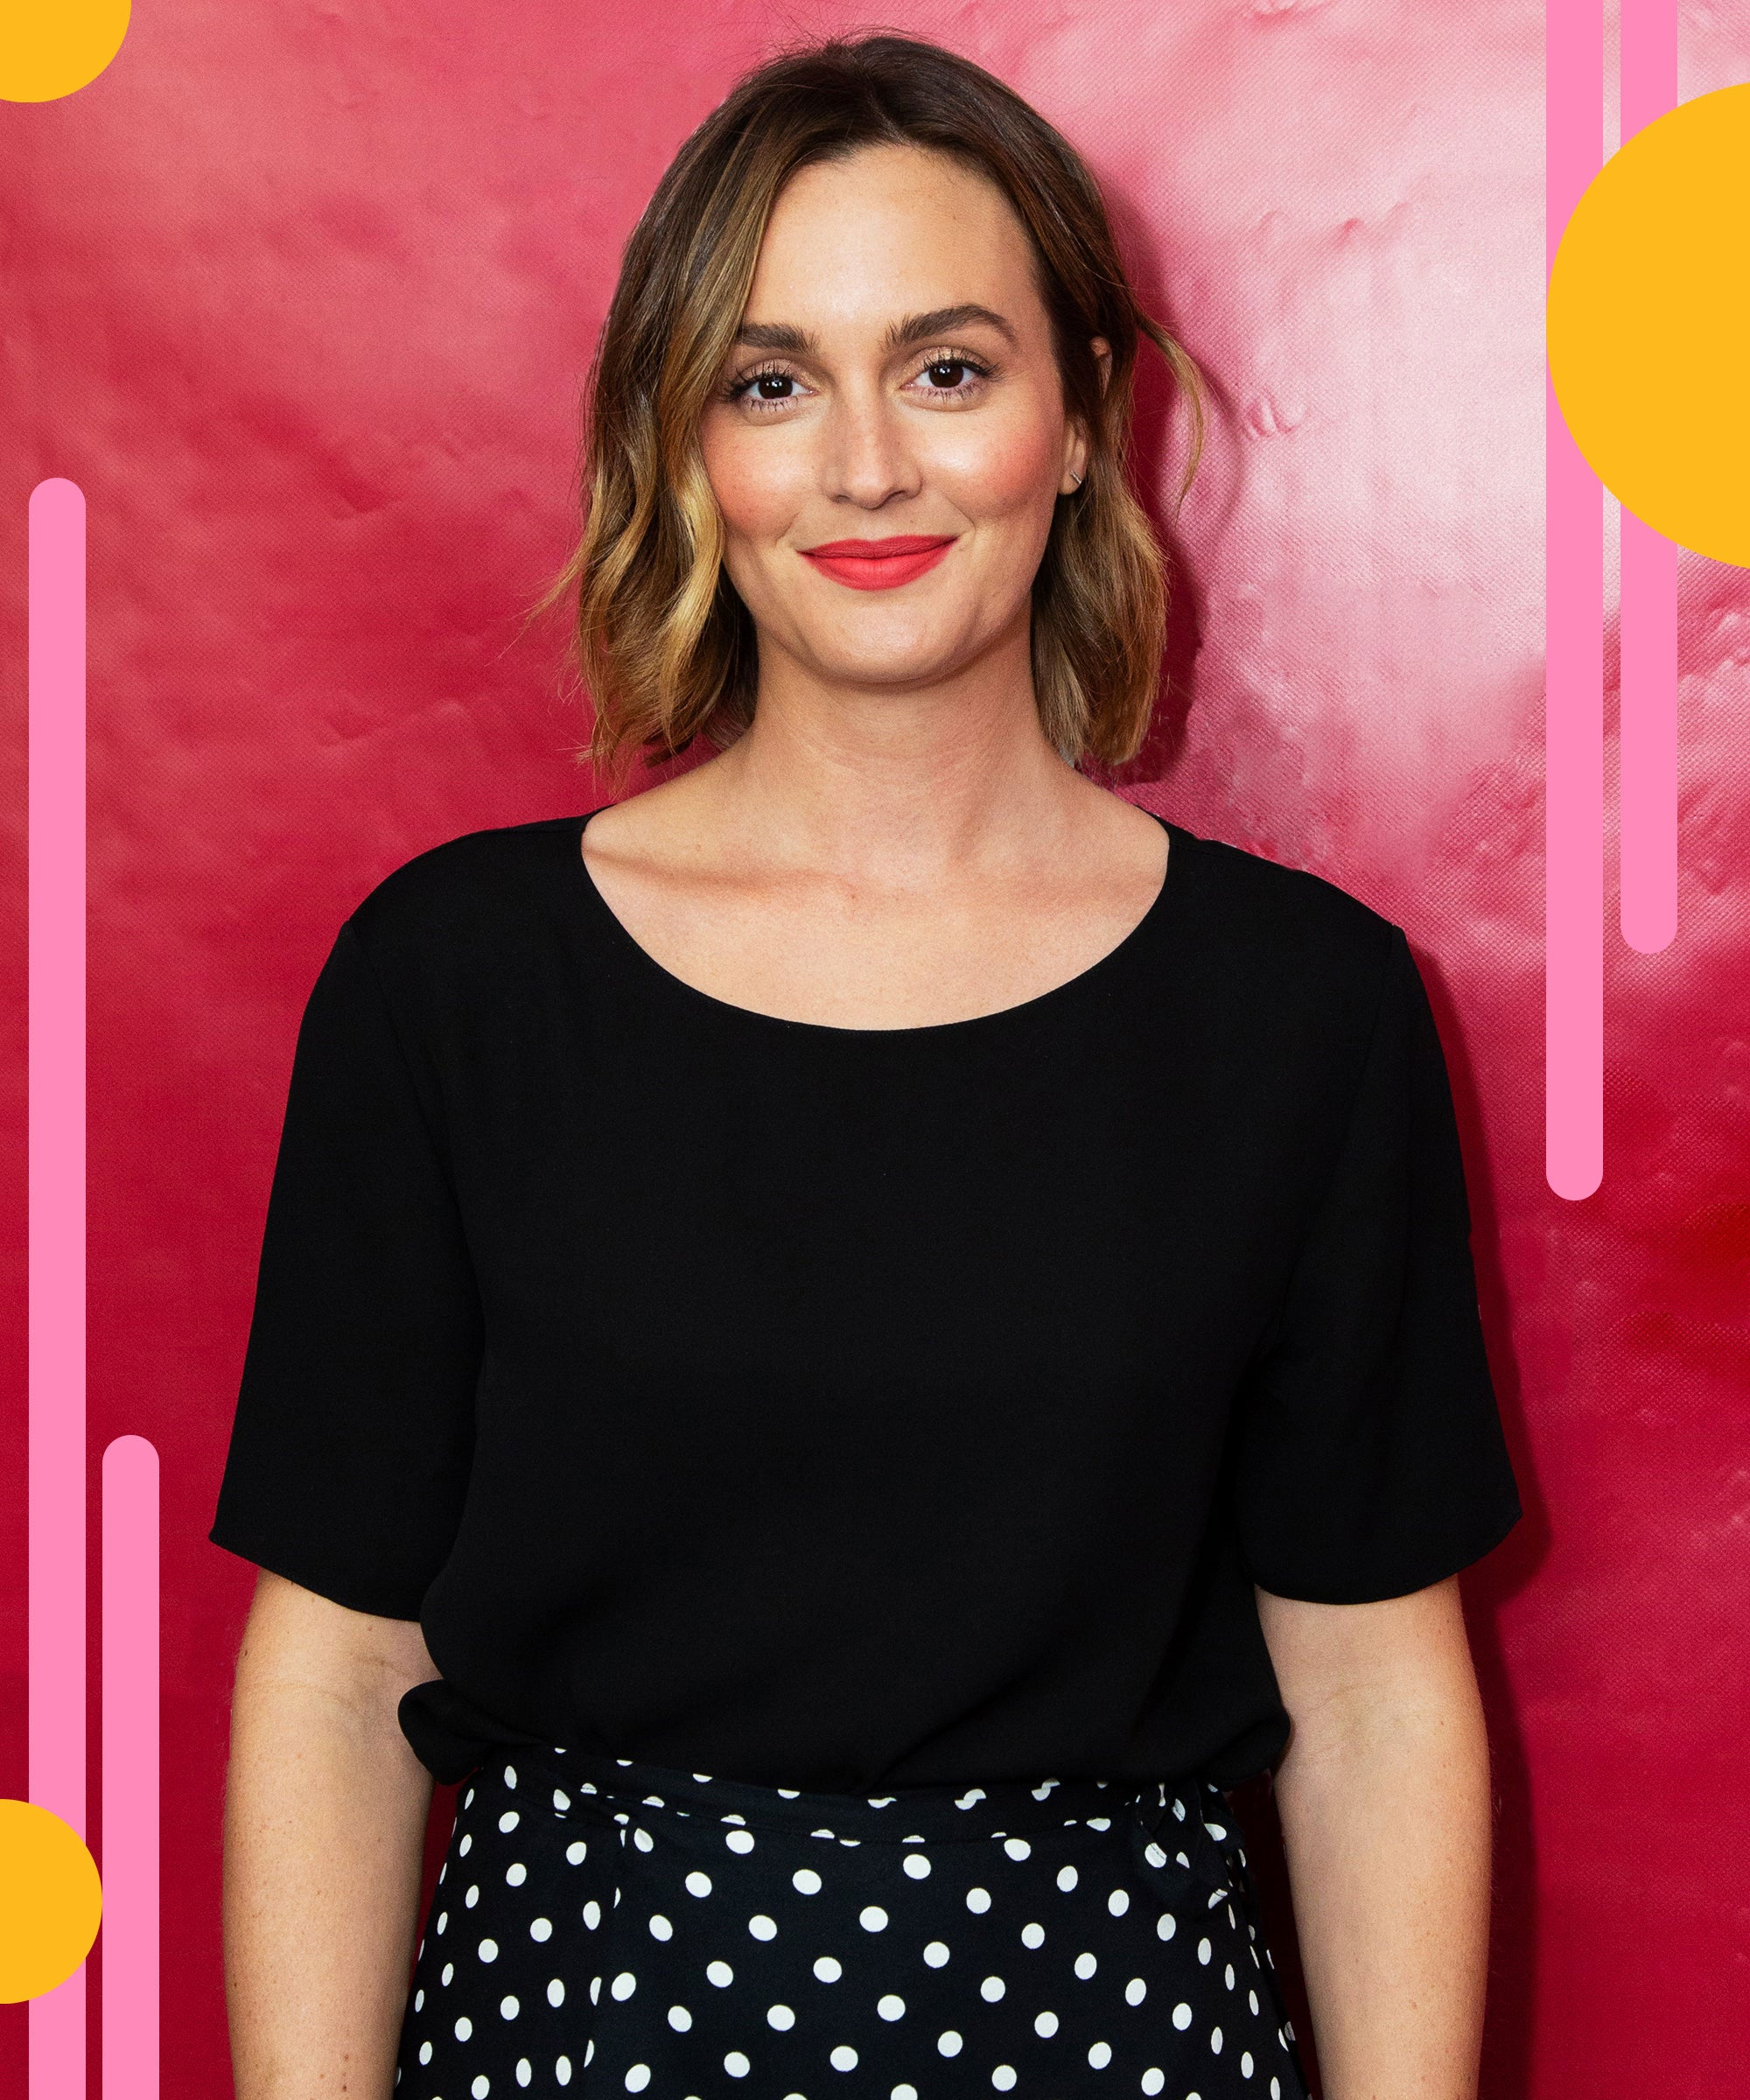 Leighton Meester On Mommy Instagram Culture & Marrying Her Crush